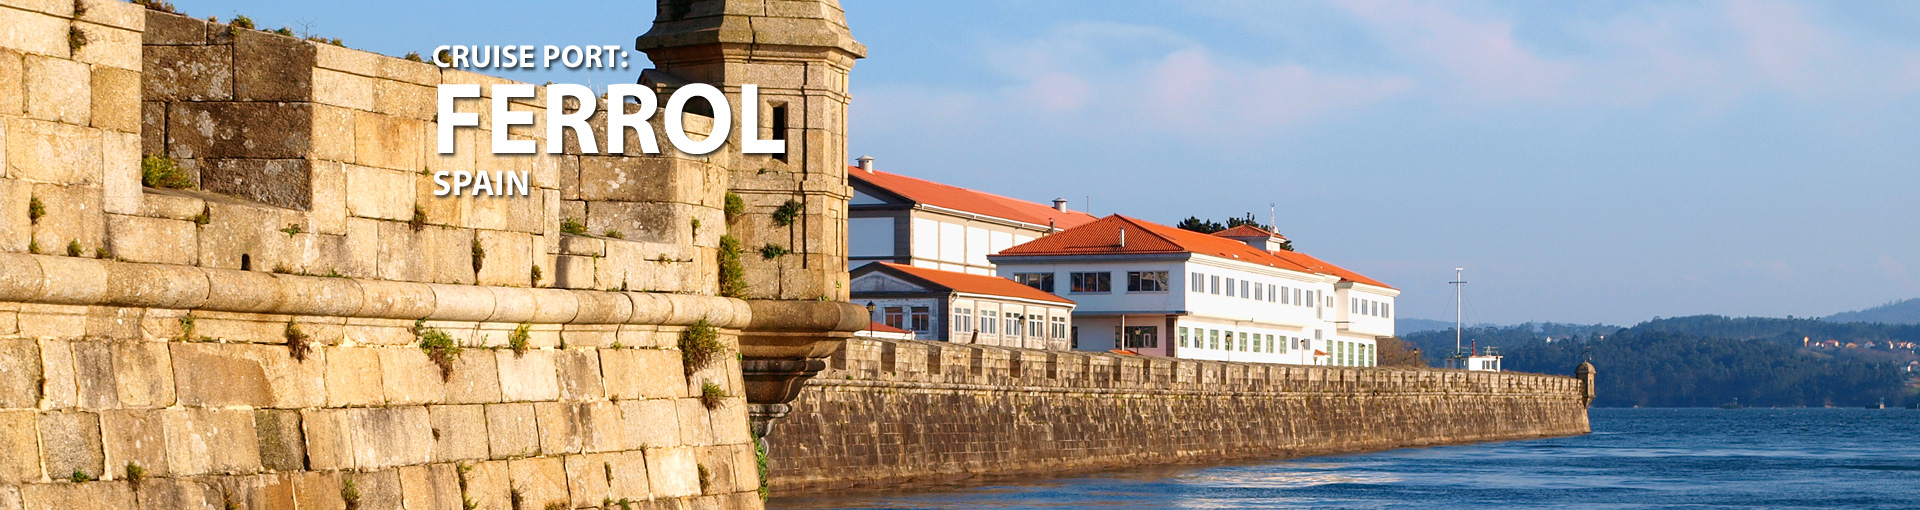 Cruises to Ferrol, Spain